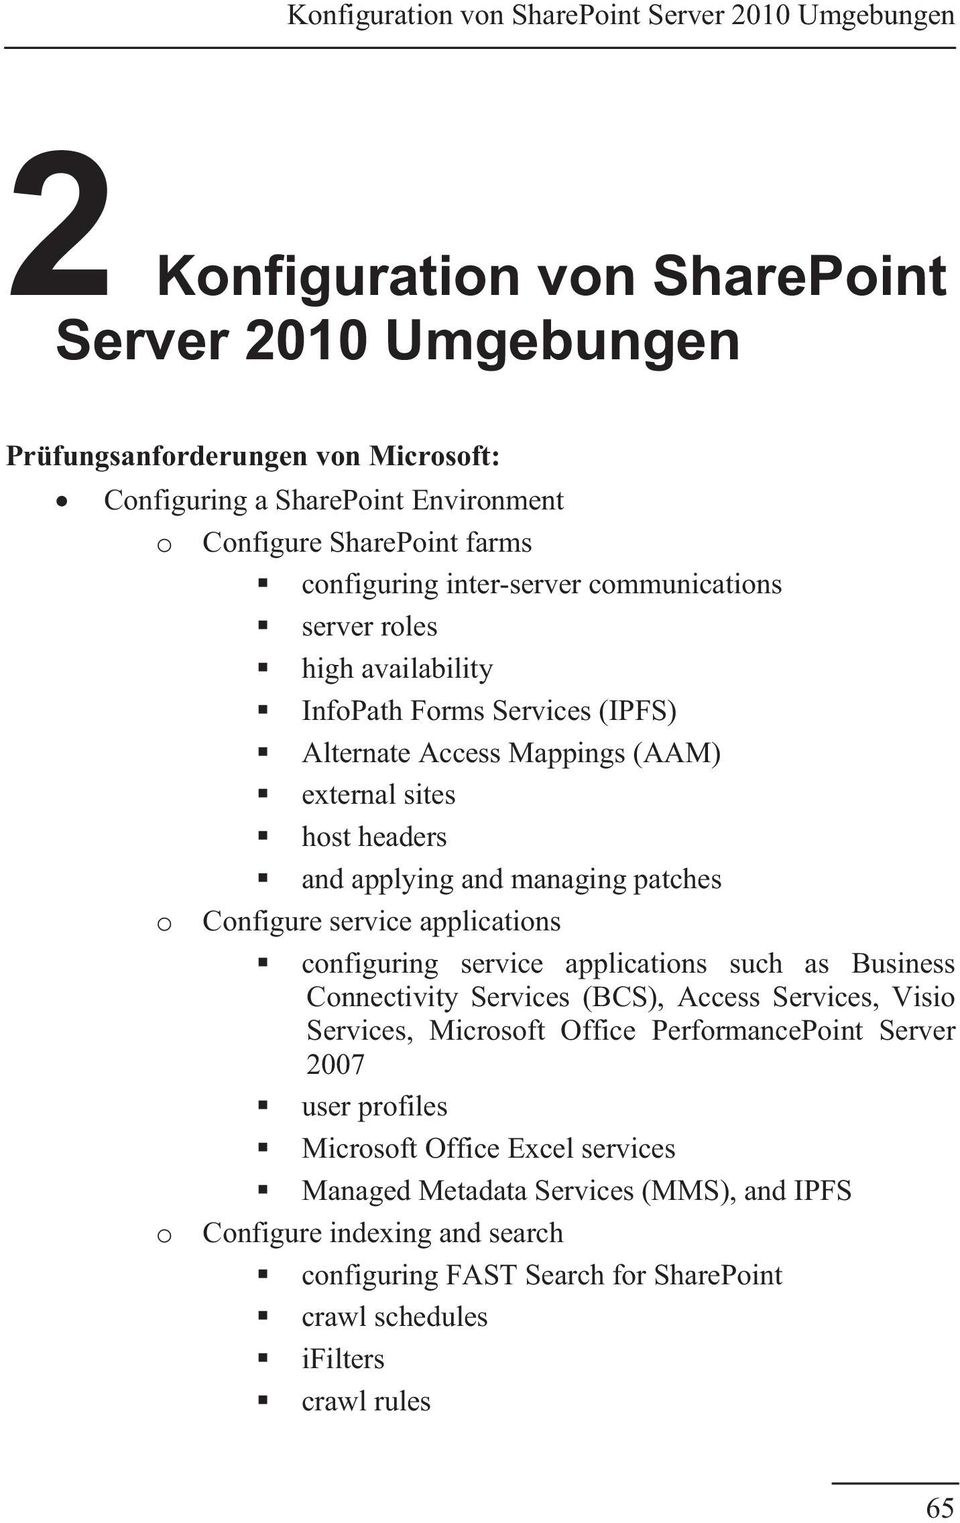 service applications configuring service applications such as Business Connectivity Services (BCS), Access Services, Visio Services, Microsoft Office PerformancePoint Server 2007 user